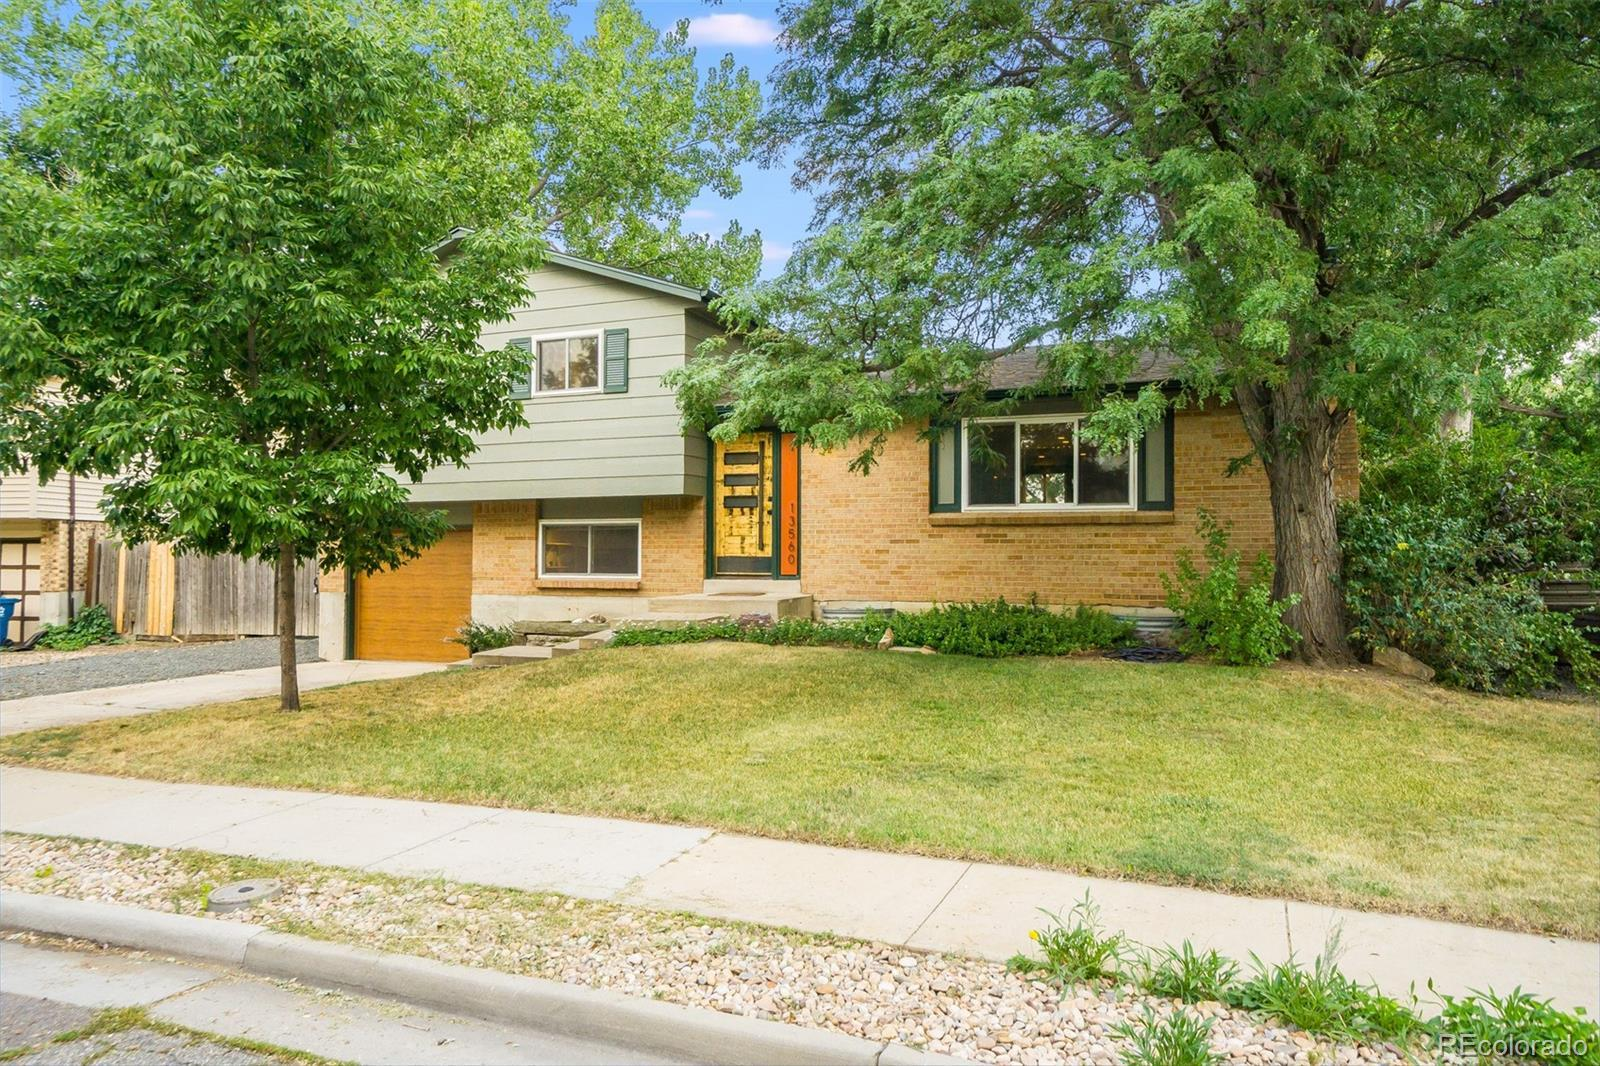 13560 W 69th Place, Arvada, CO 80004 - #: 2606650